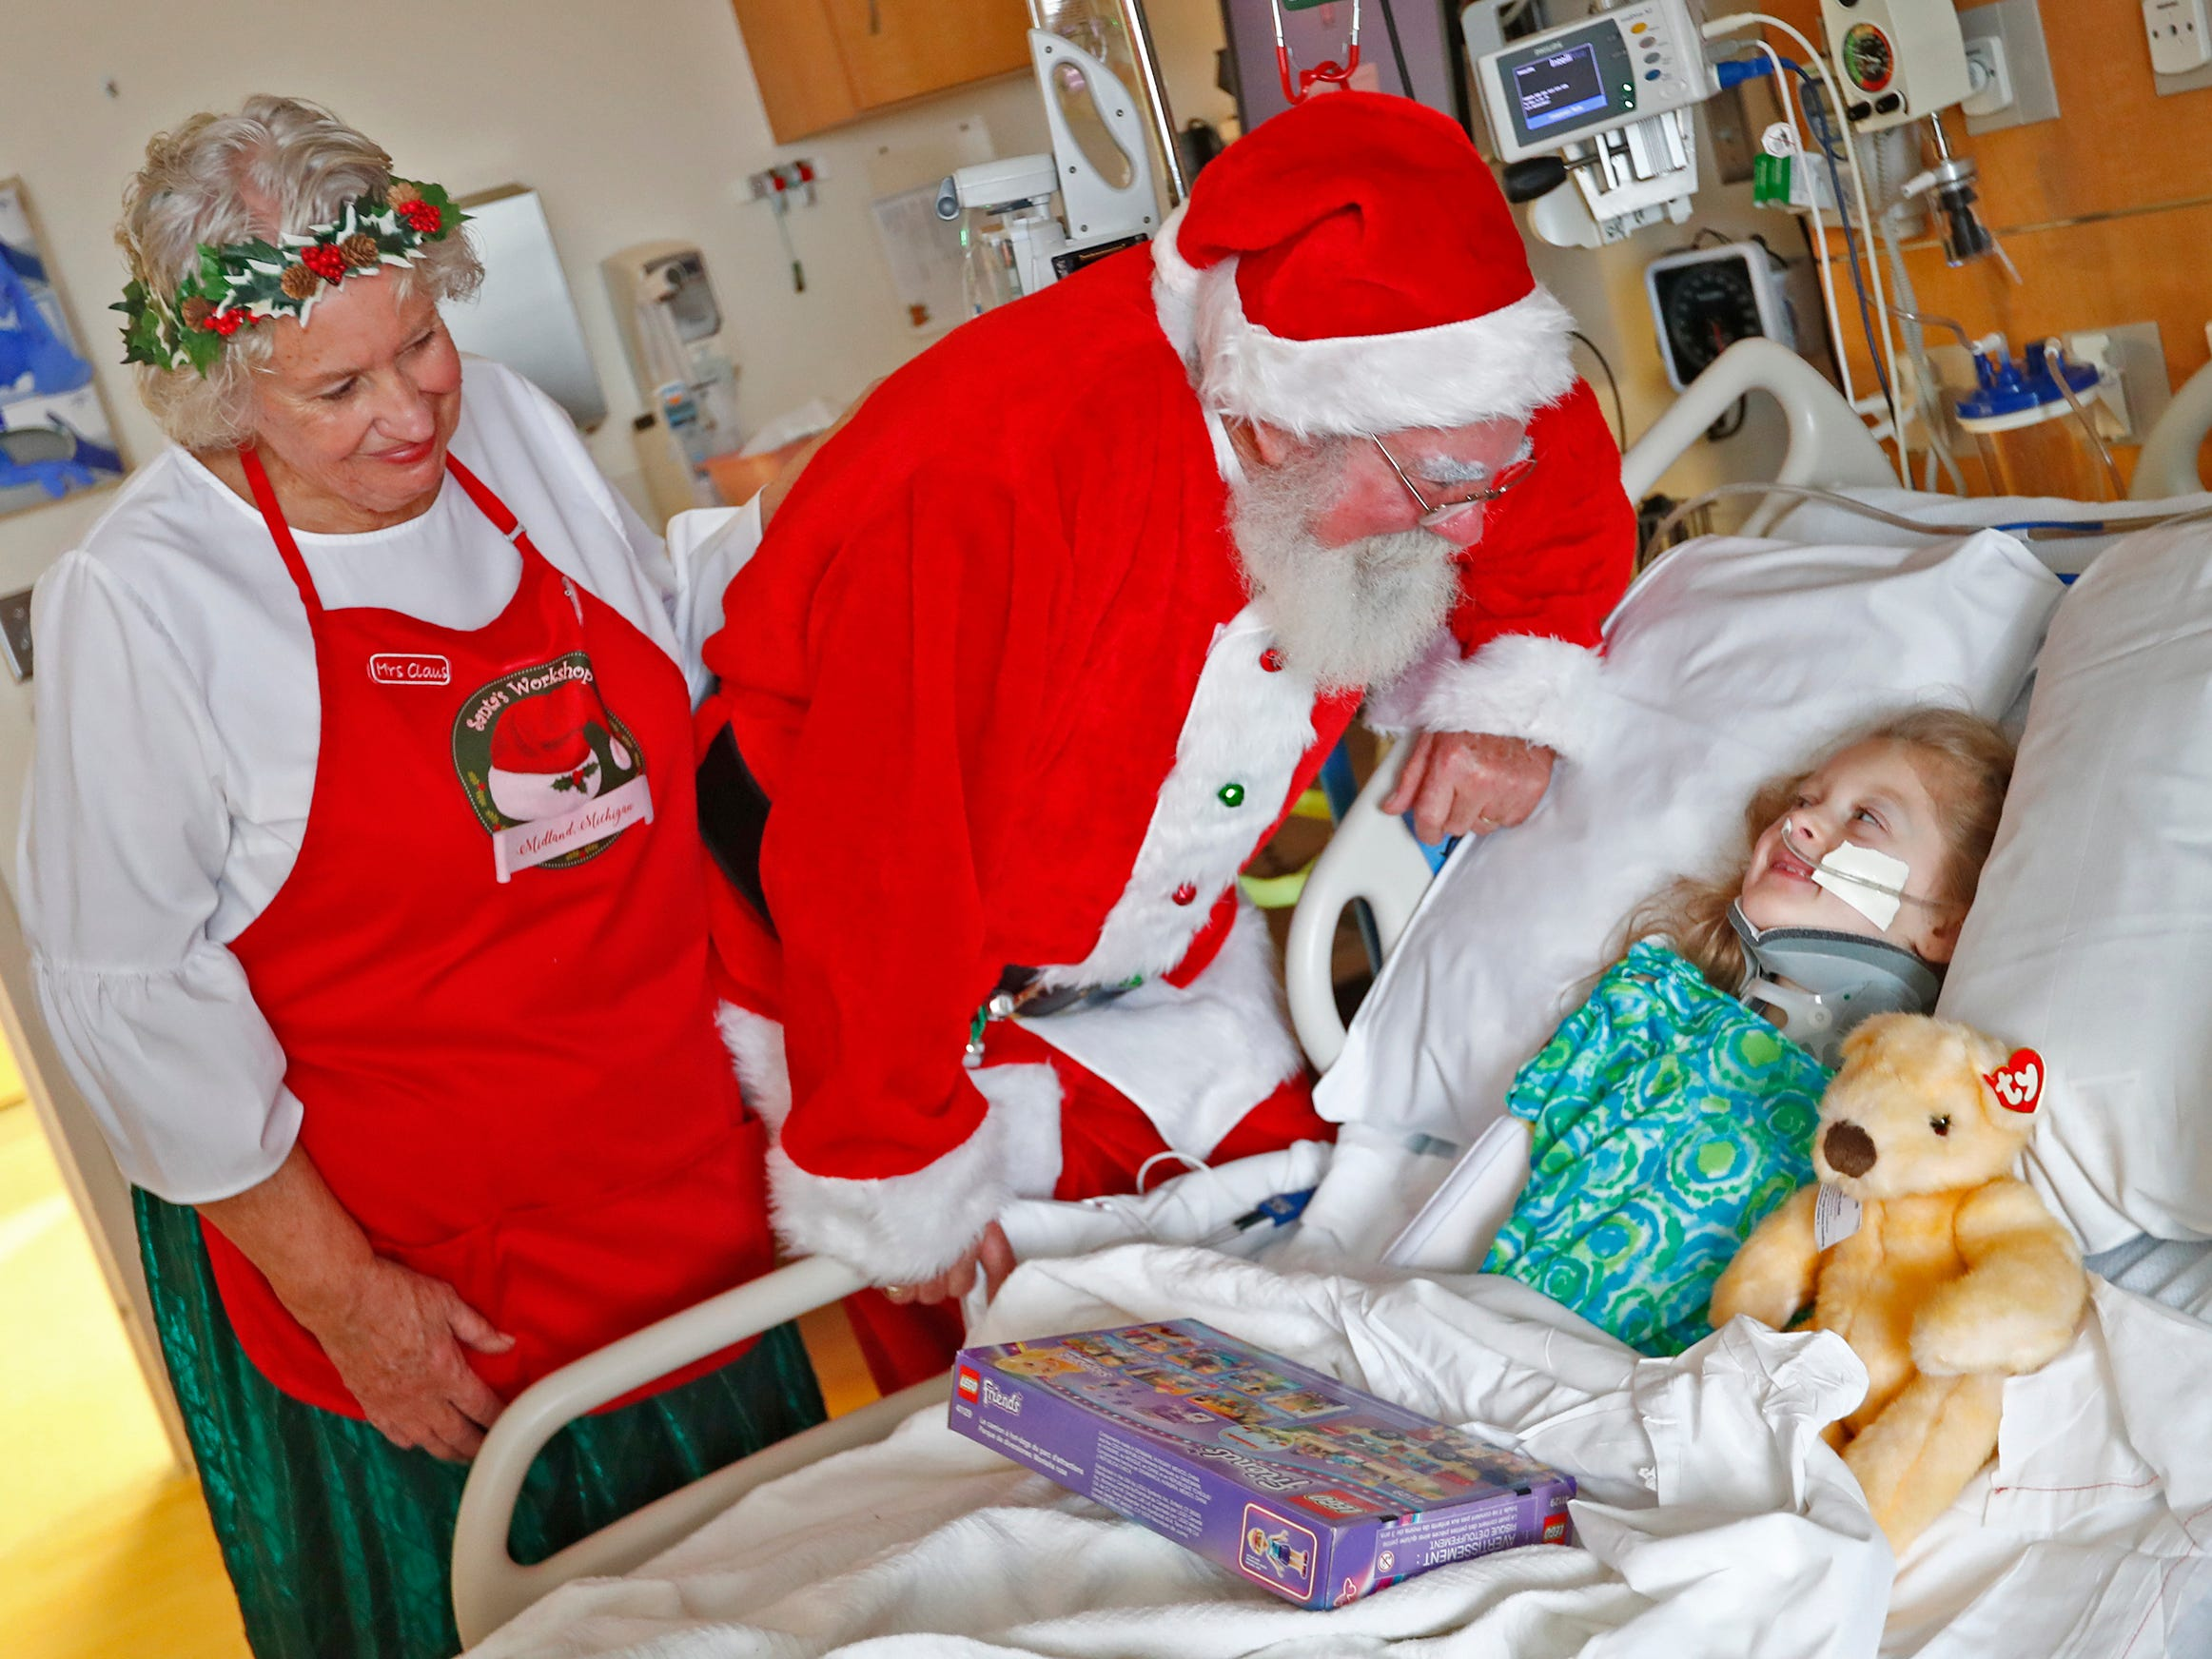 Santa and Mrs. Claus, aka Bill and Kathy Armstrong, talk with Leighton Gadbury, while they visit with kids at Riley Children's Health, Thursday, Dec. 13, 2018.